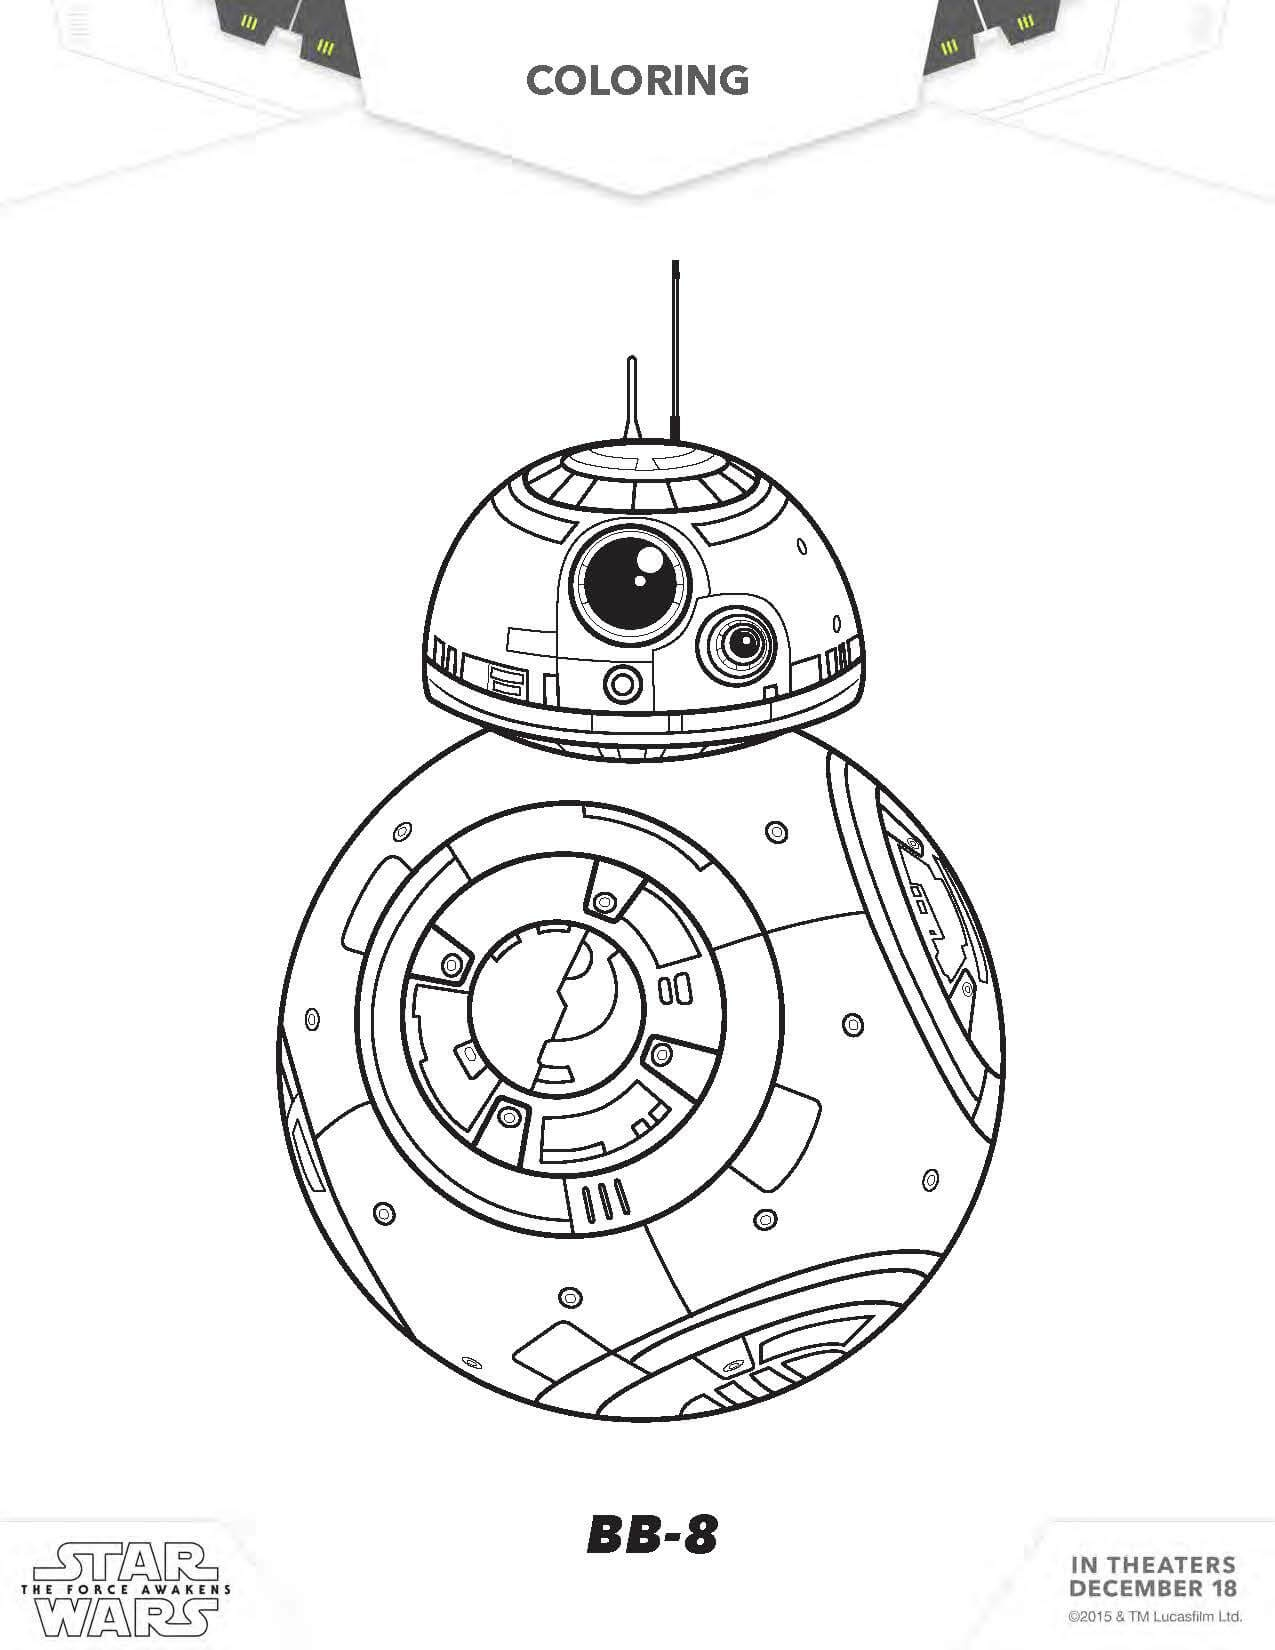 Lovely Sensational Bb8 Coloring Page Star Wars Pages the force Collection Of New Coloring Pages Star Wars Printable